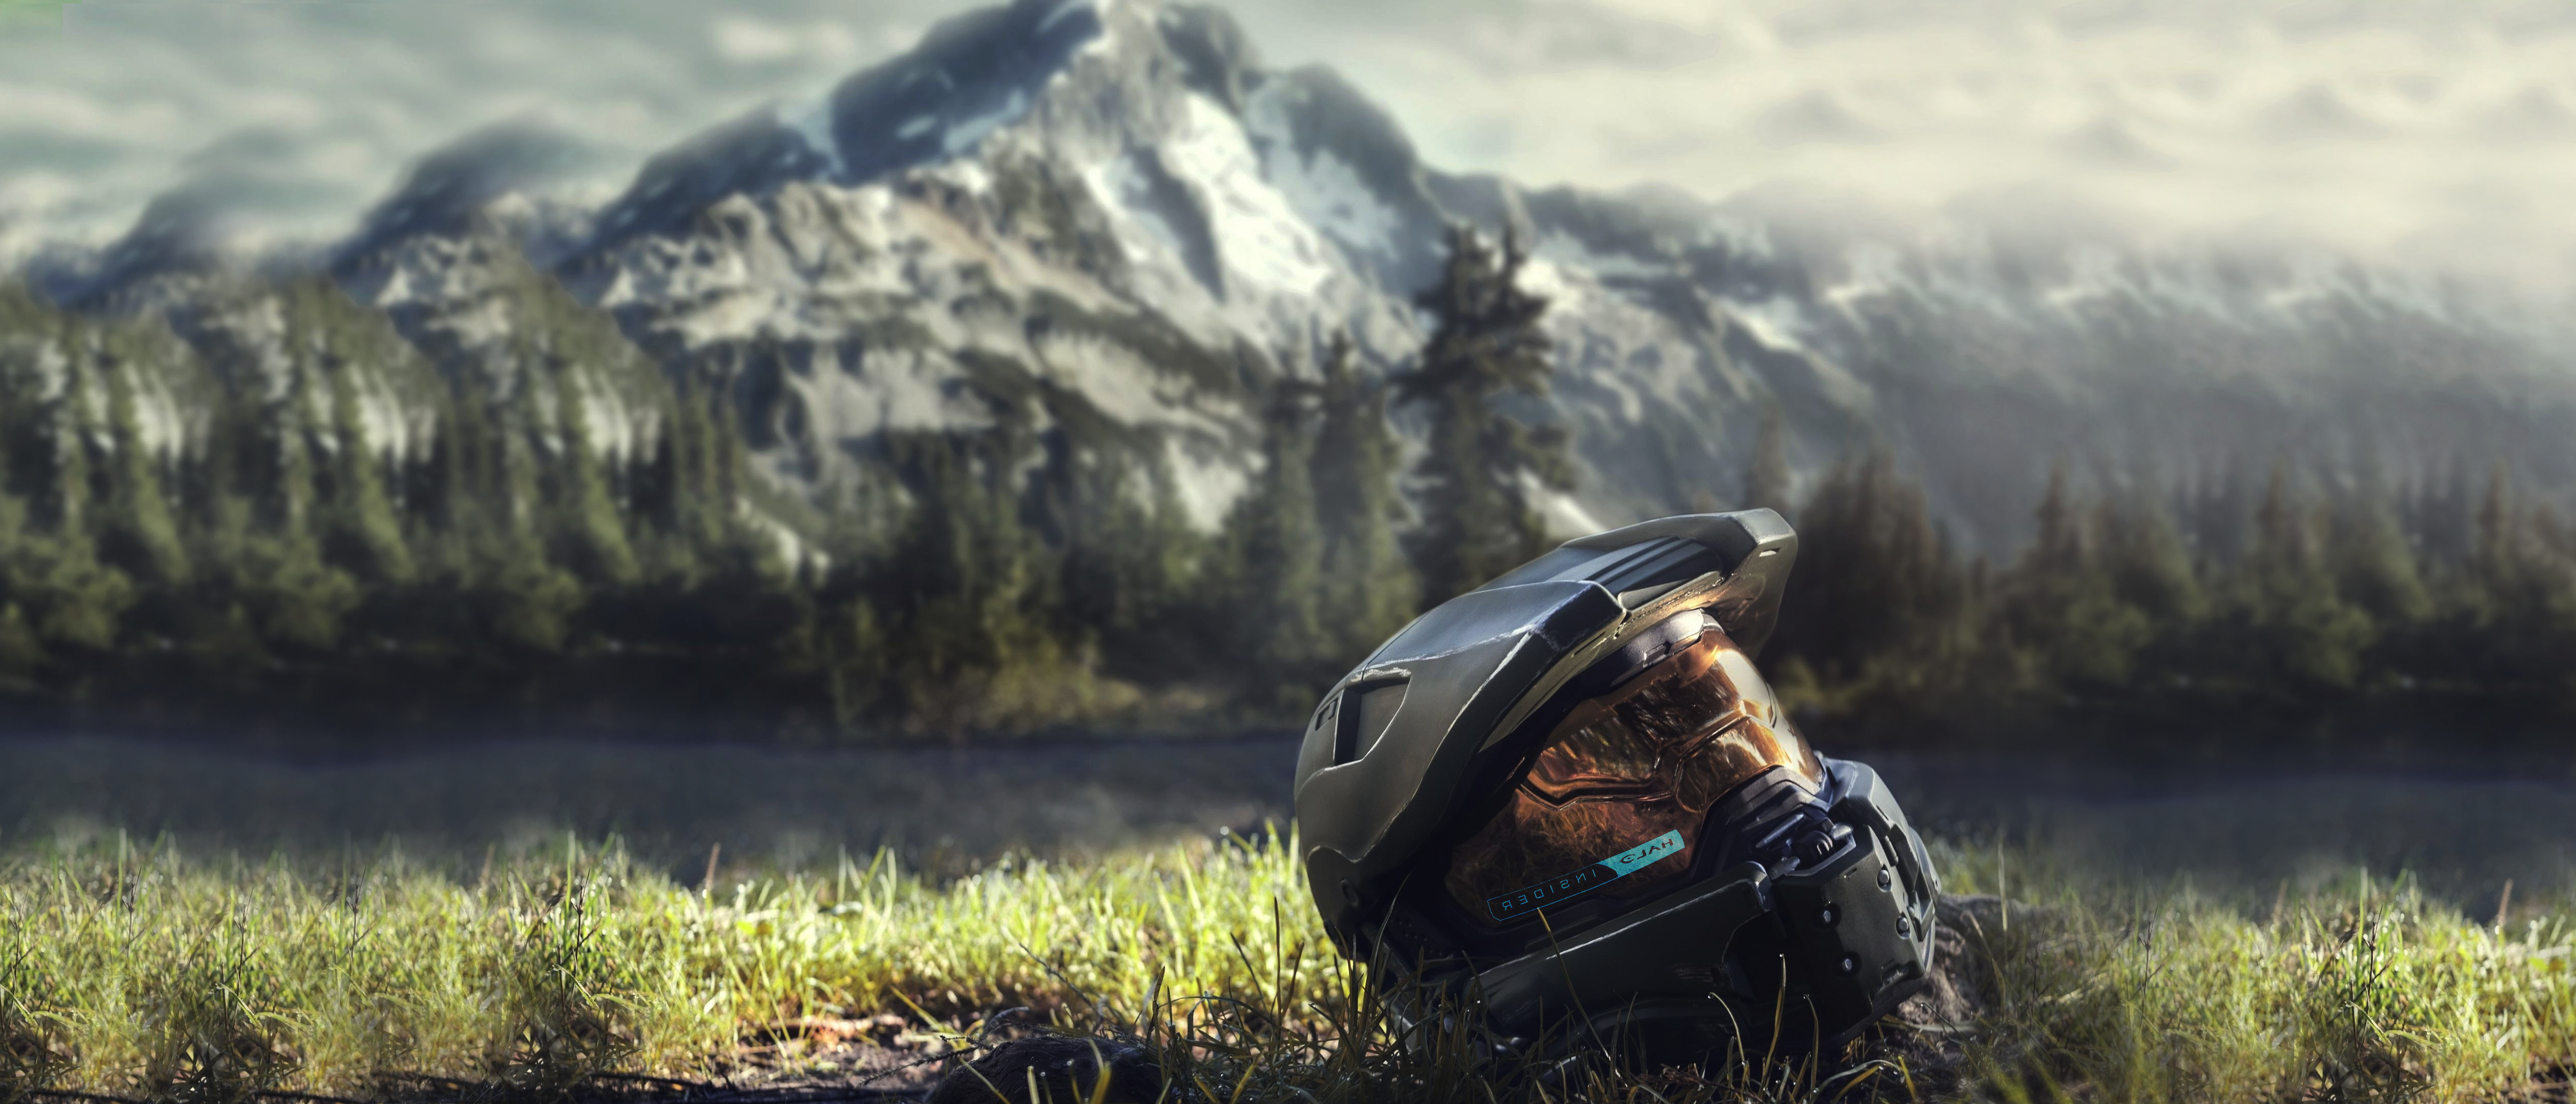 Halo Infinite 4k is hd wallpapers & backgrounds for